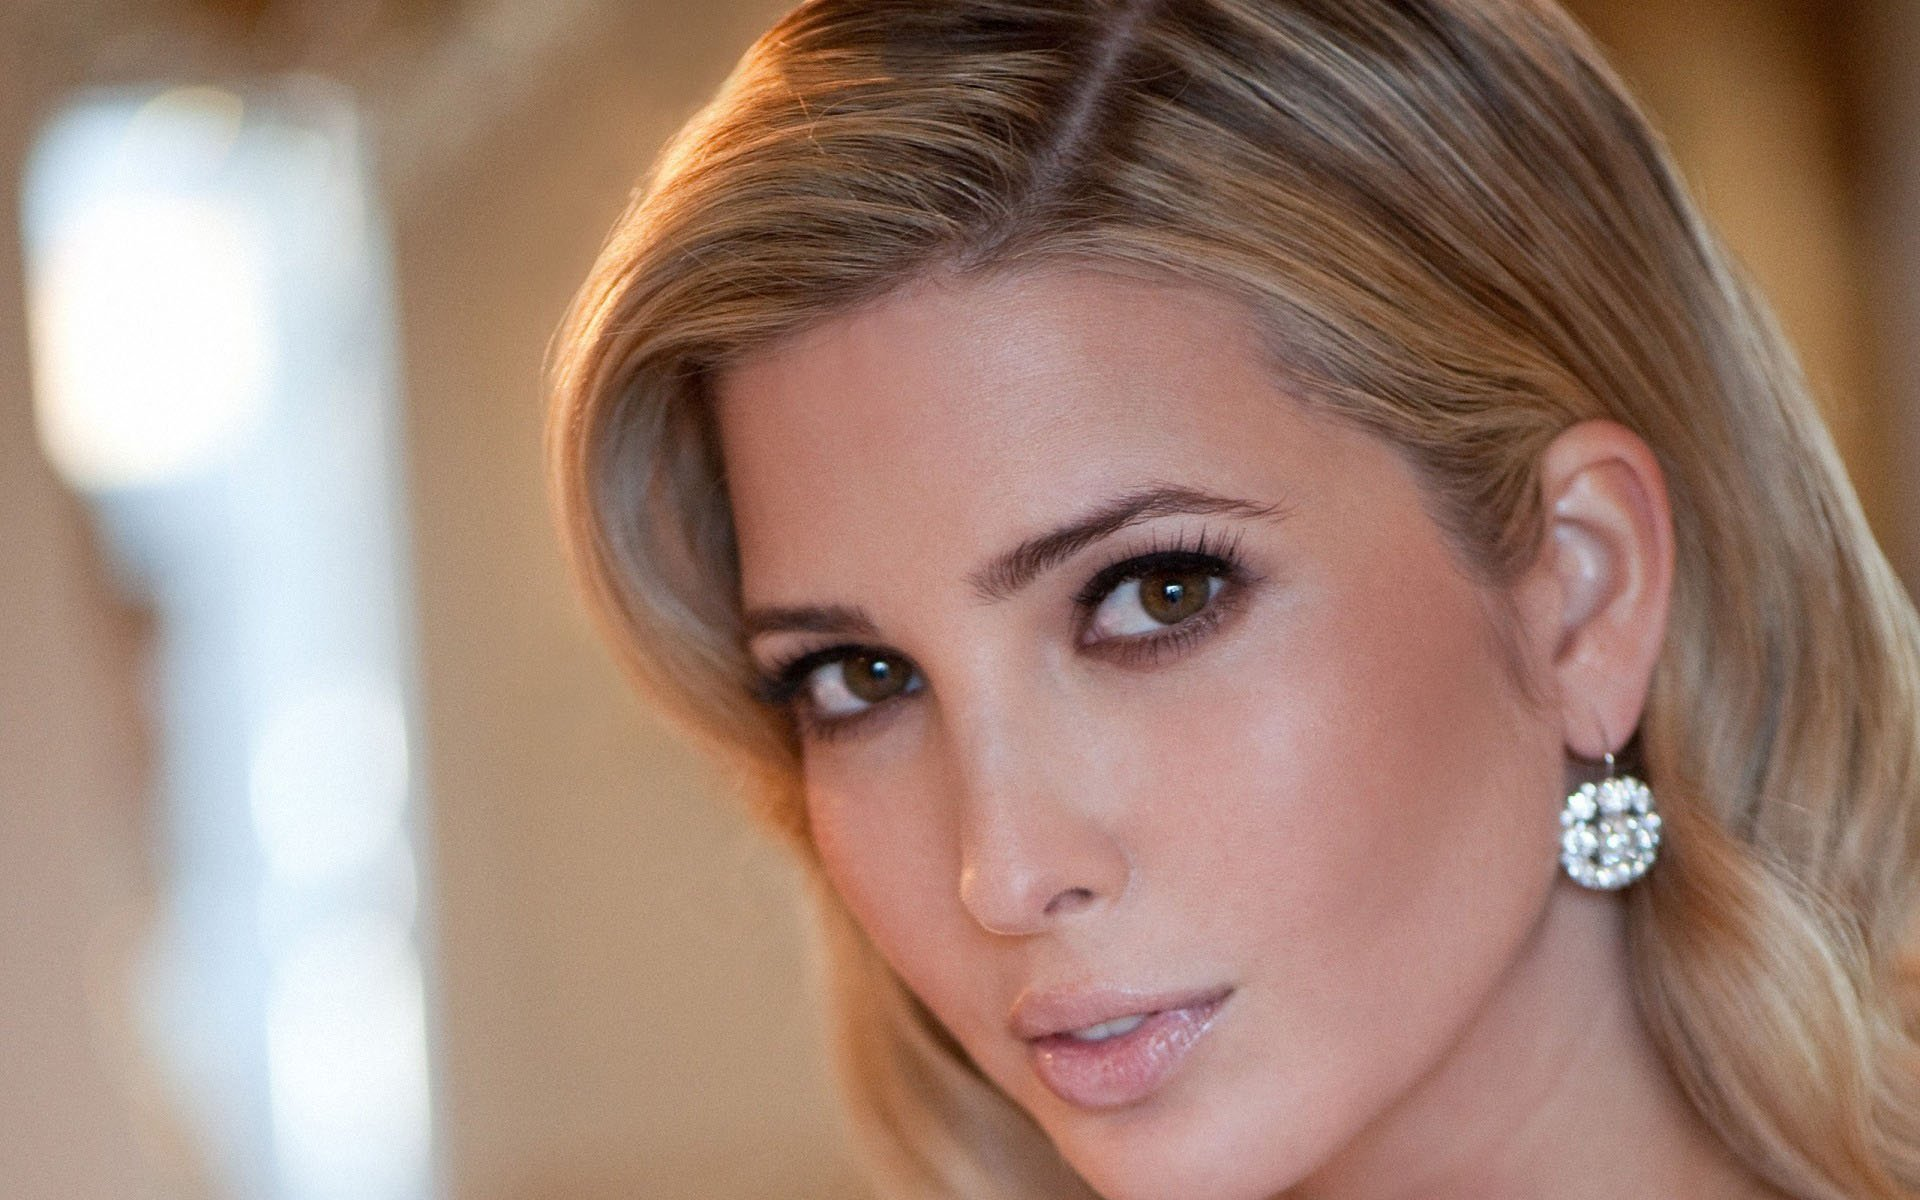 ivanka trump face desktop wallpaper 60246